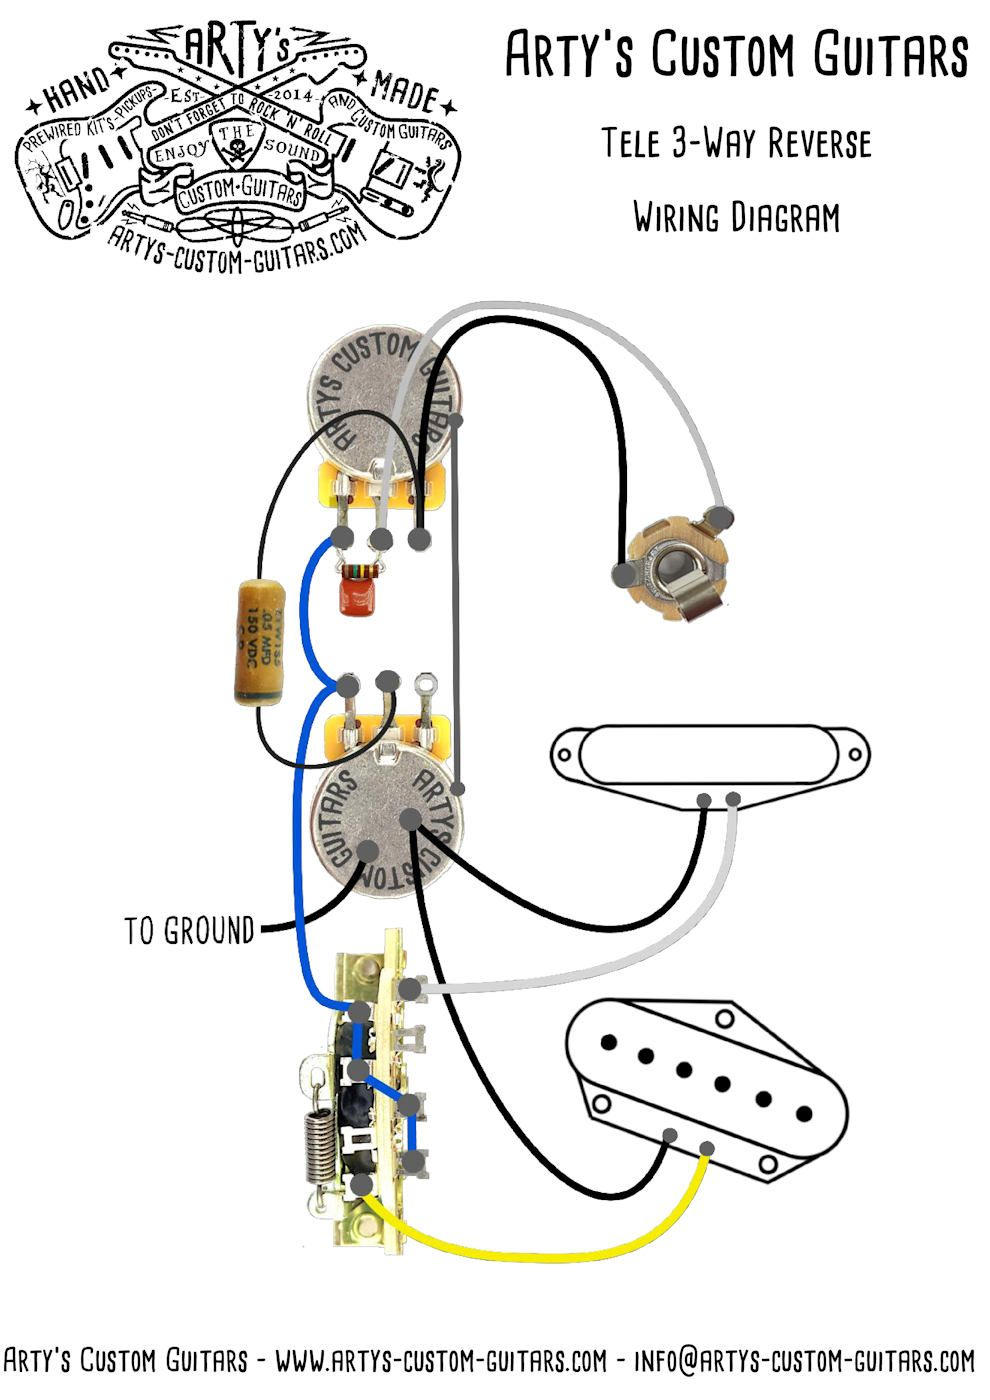 medium resolution of telecaster 3 way reverse wiring diagram arty s custom guitars